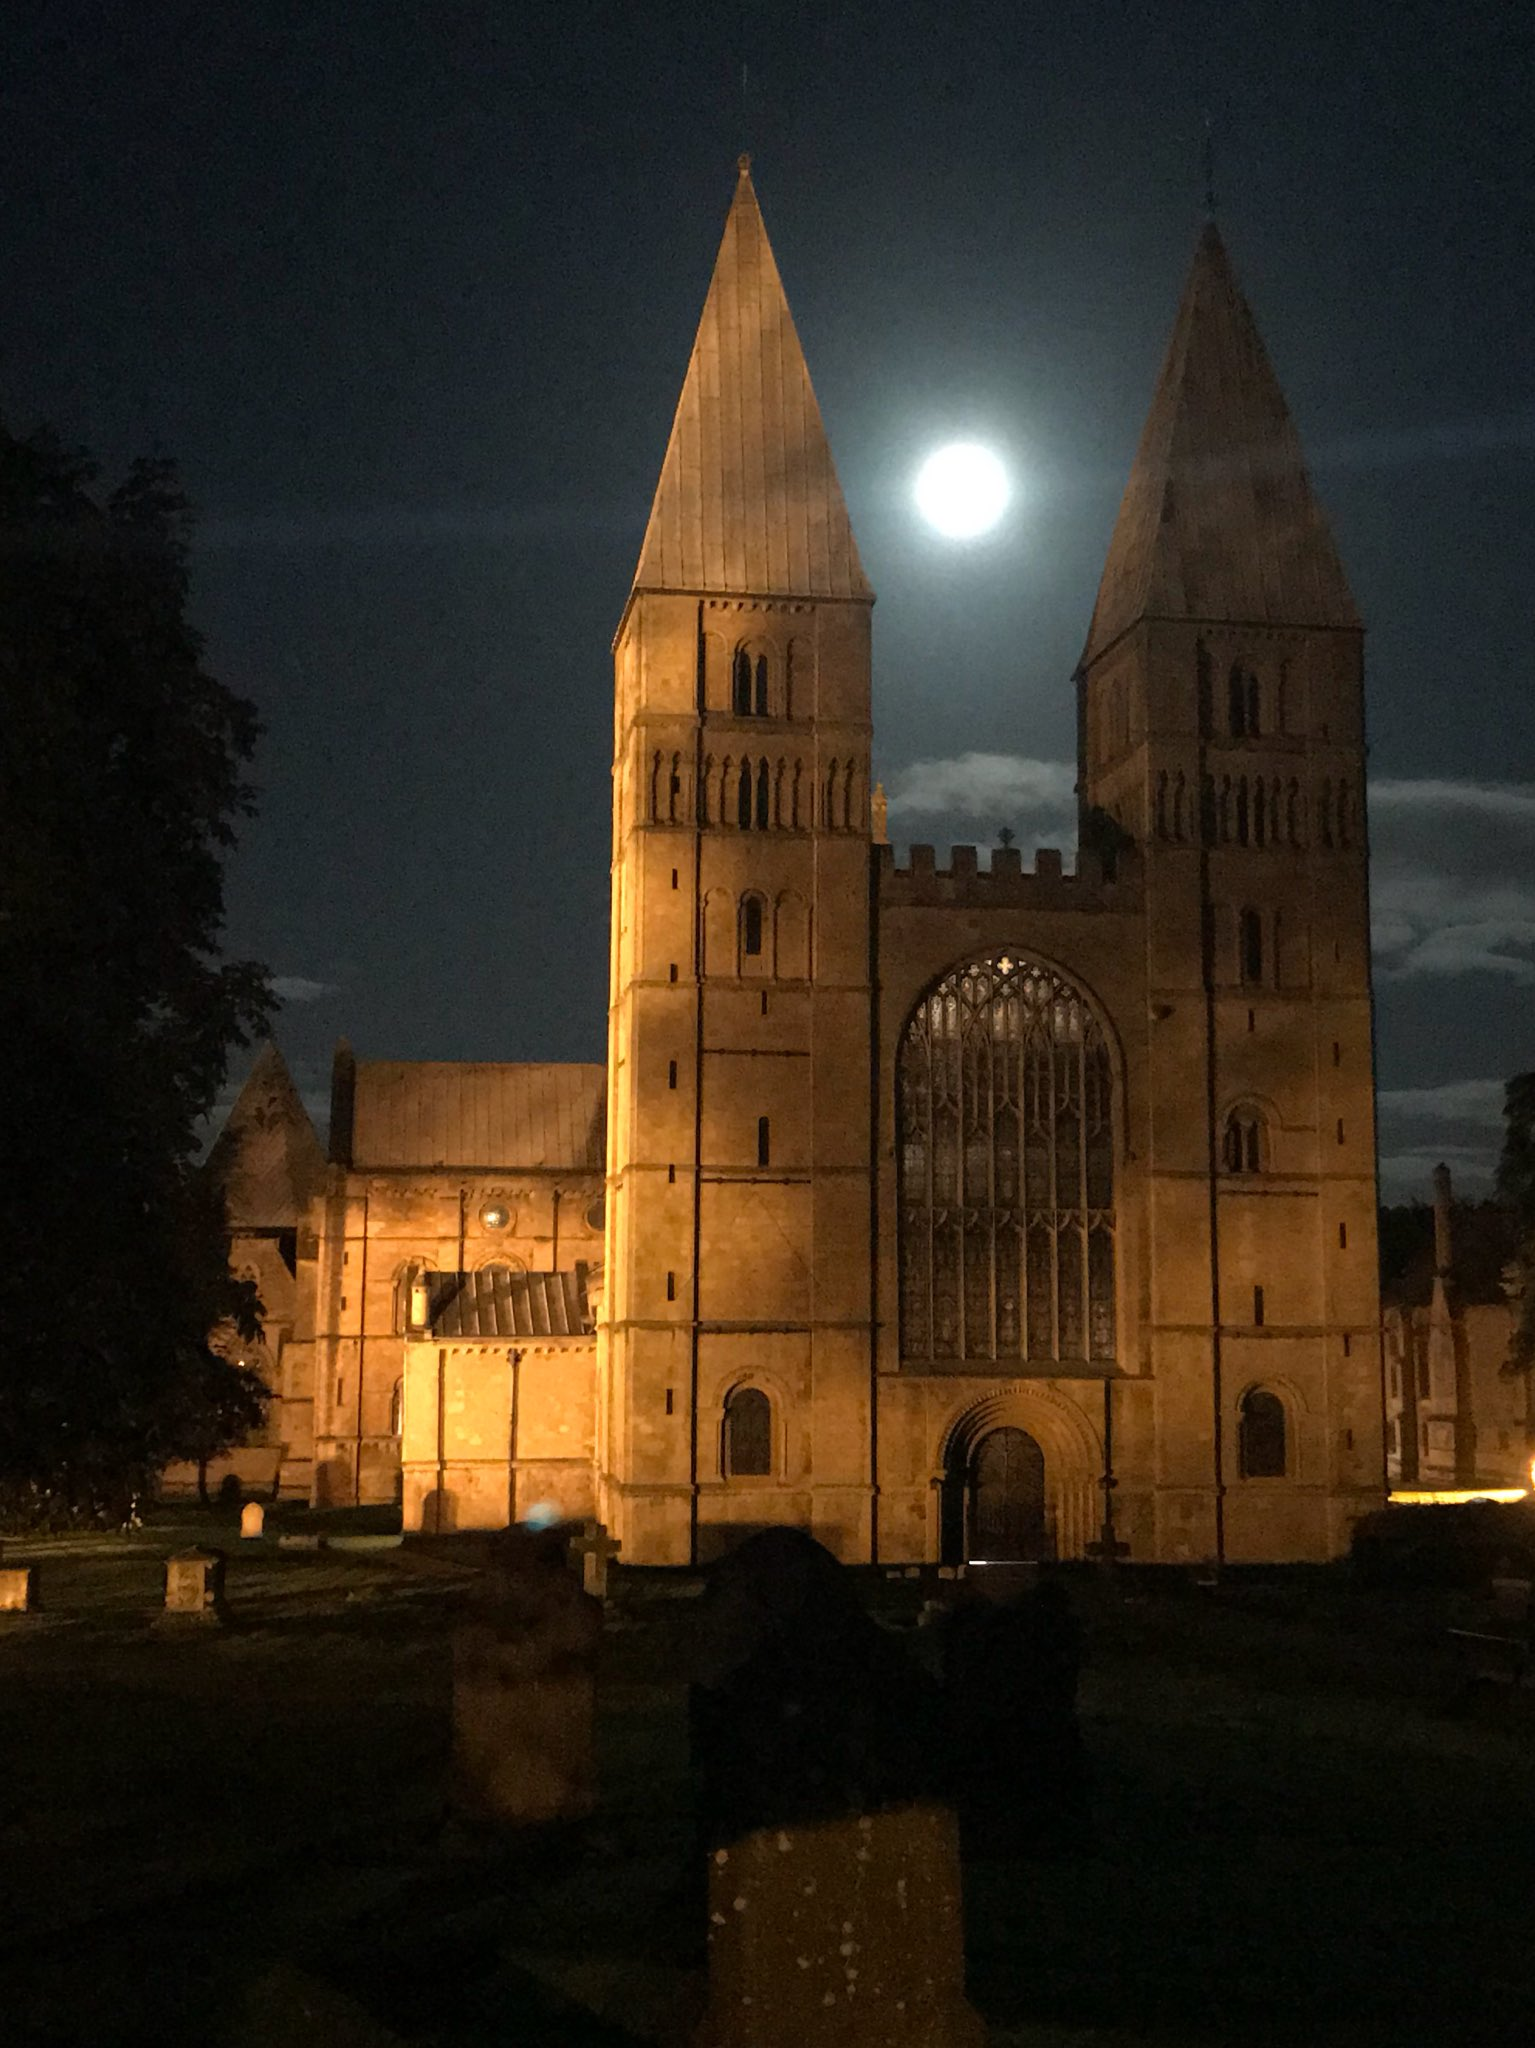 Stunning harvest moon tonight over @SouthwMinster https://t.co/kZ1WJ9e7vo